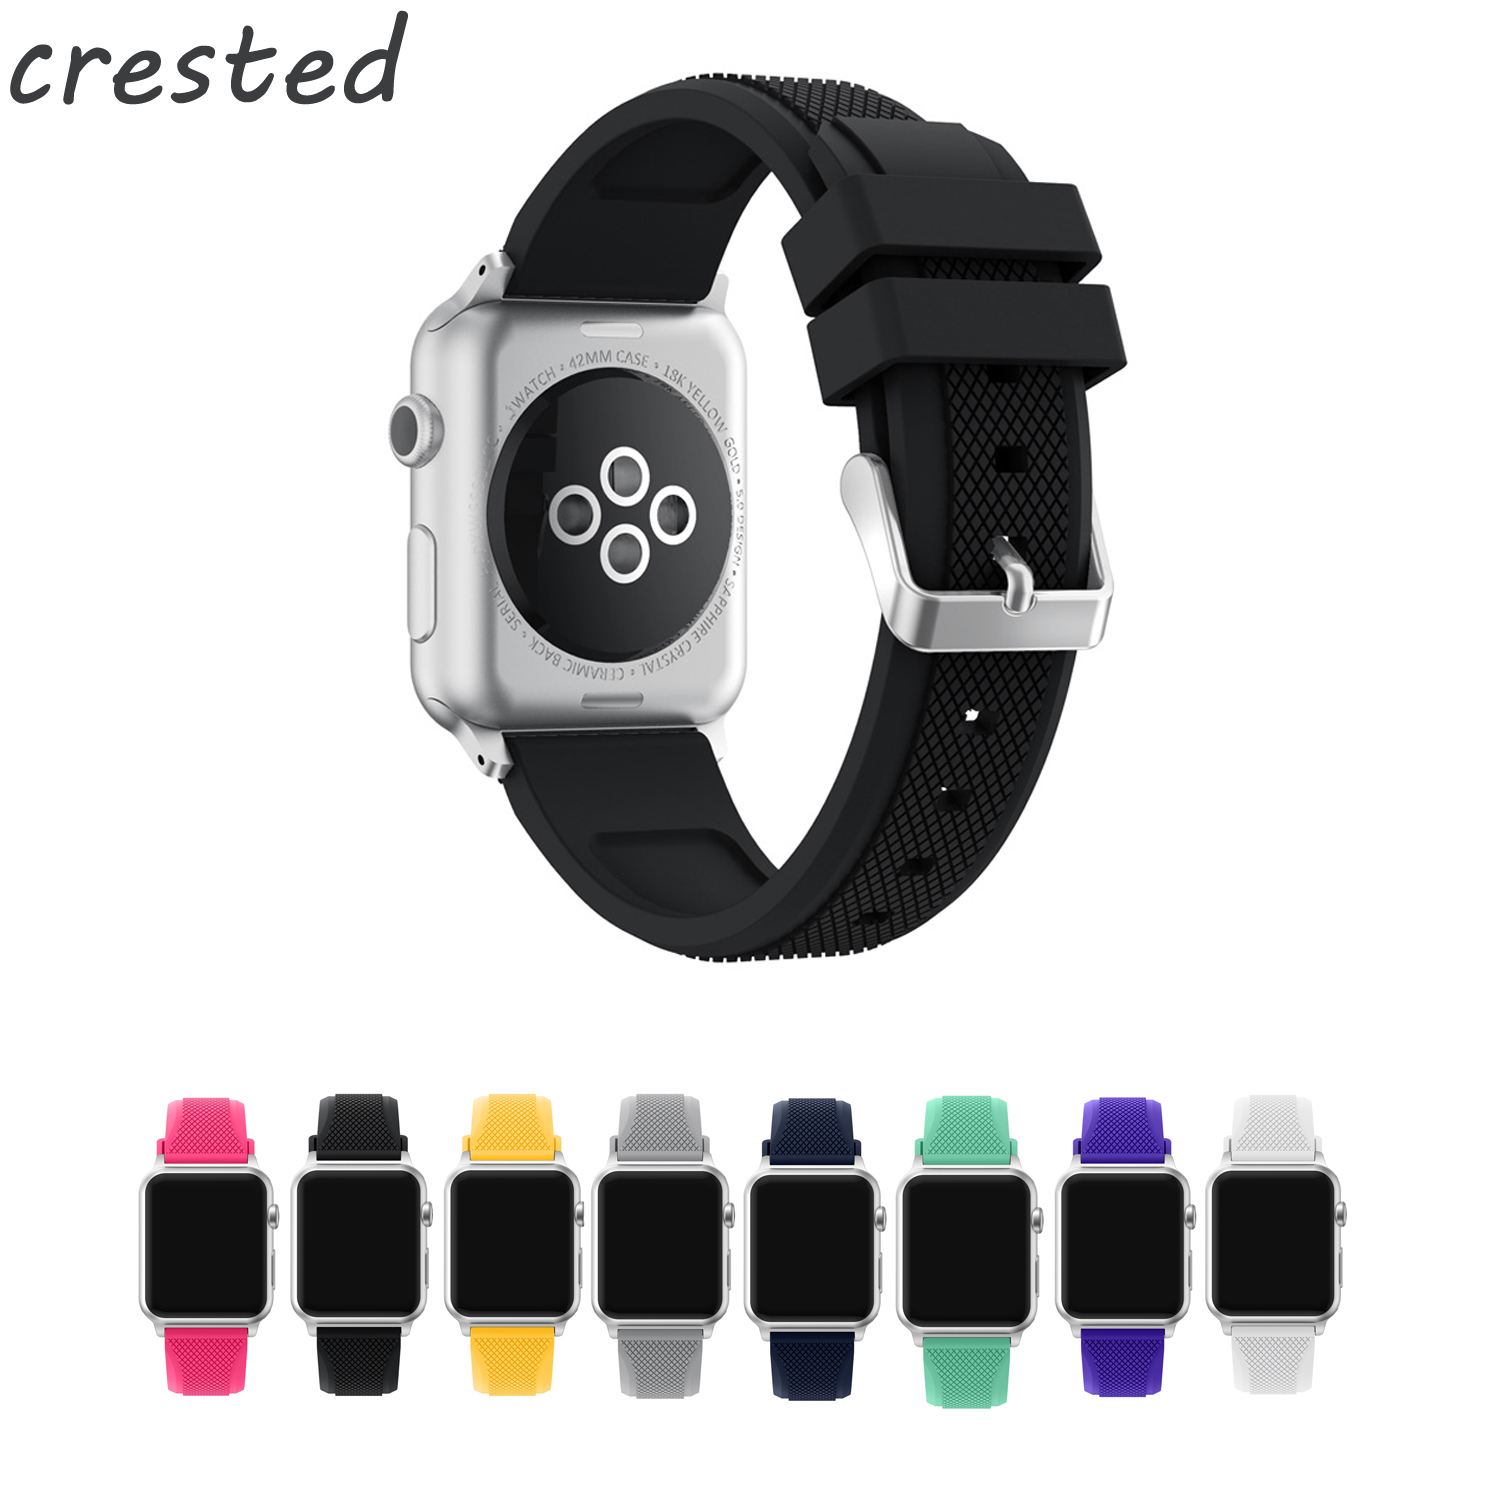 CRESTED sport soft silicone strap for apple watch iwatch 3/2/1 42mm 38mm bracelet watch band Pineapple pattern watch strap crested sport band for apple watch 42mm 38mm bracelet strap iwatch nike 3 2 1 breathabe wrist watchband rubber watch band strap